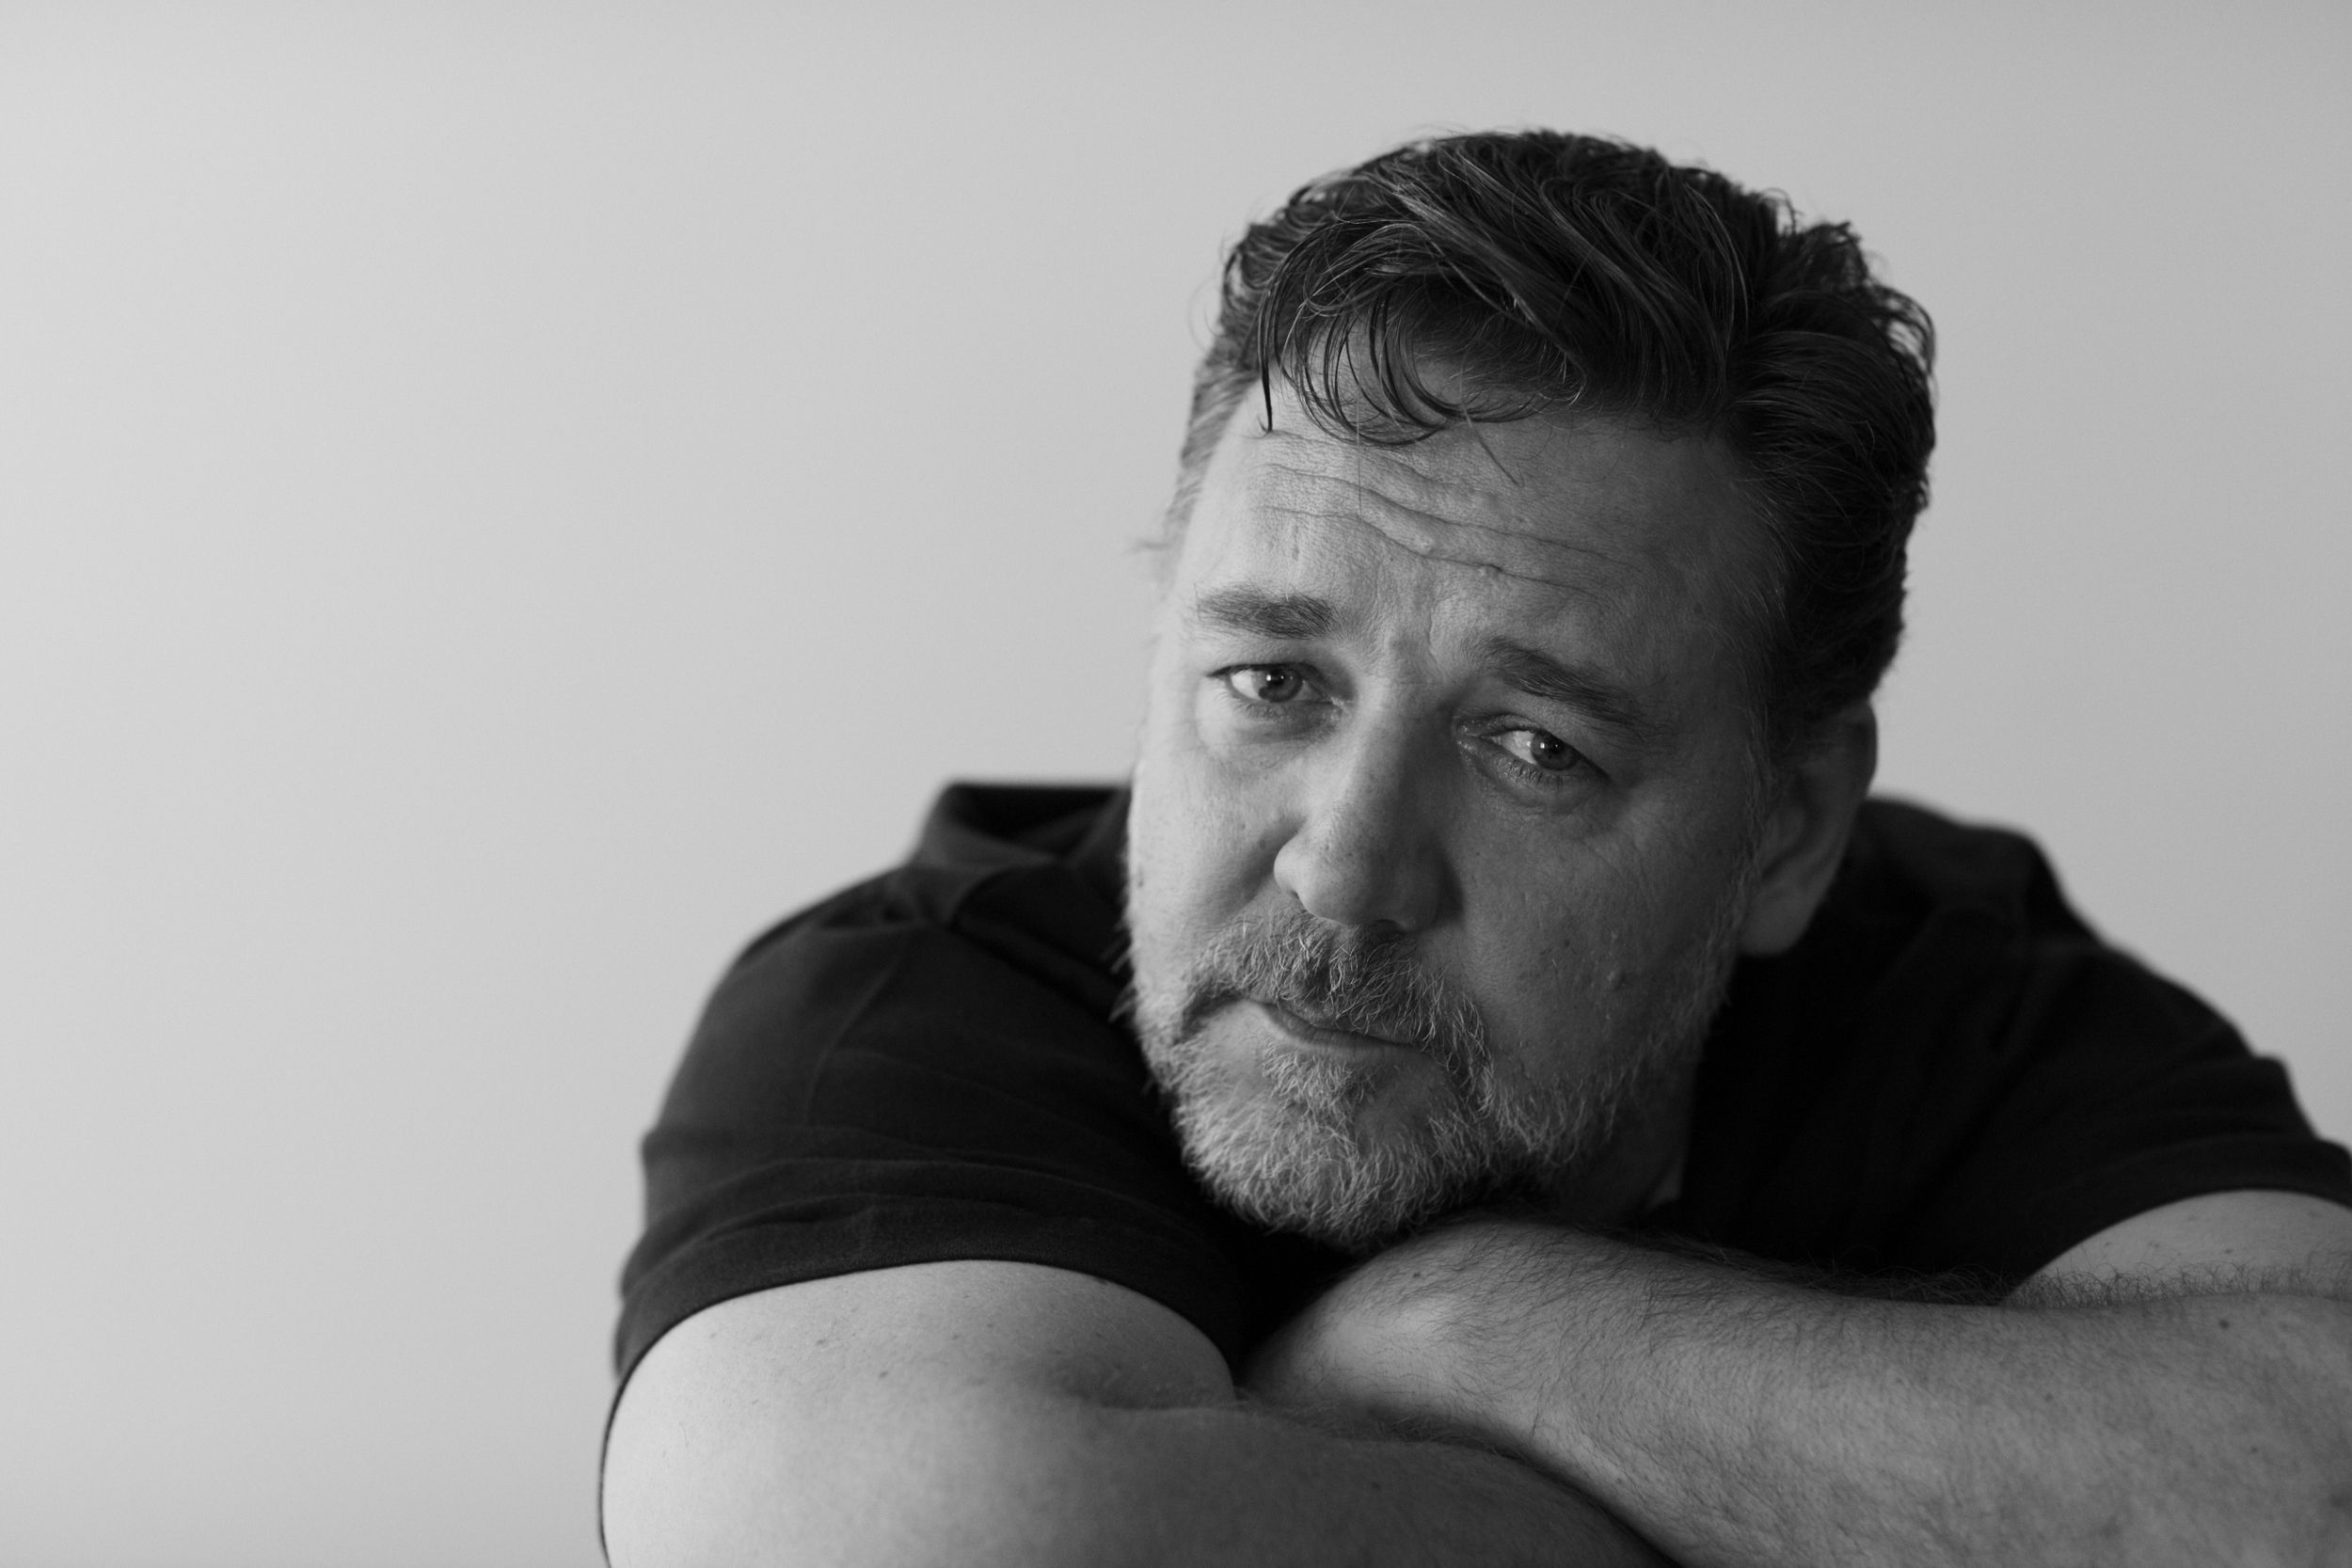 Russell Crowe Wallpapers Image Photos Pictures Backgrounds